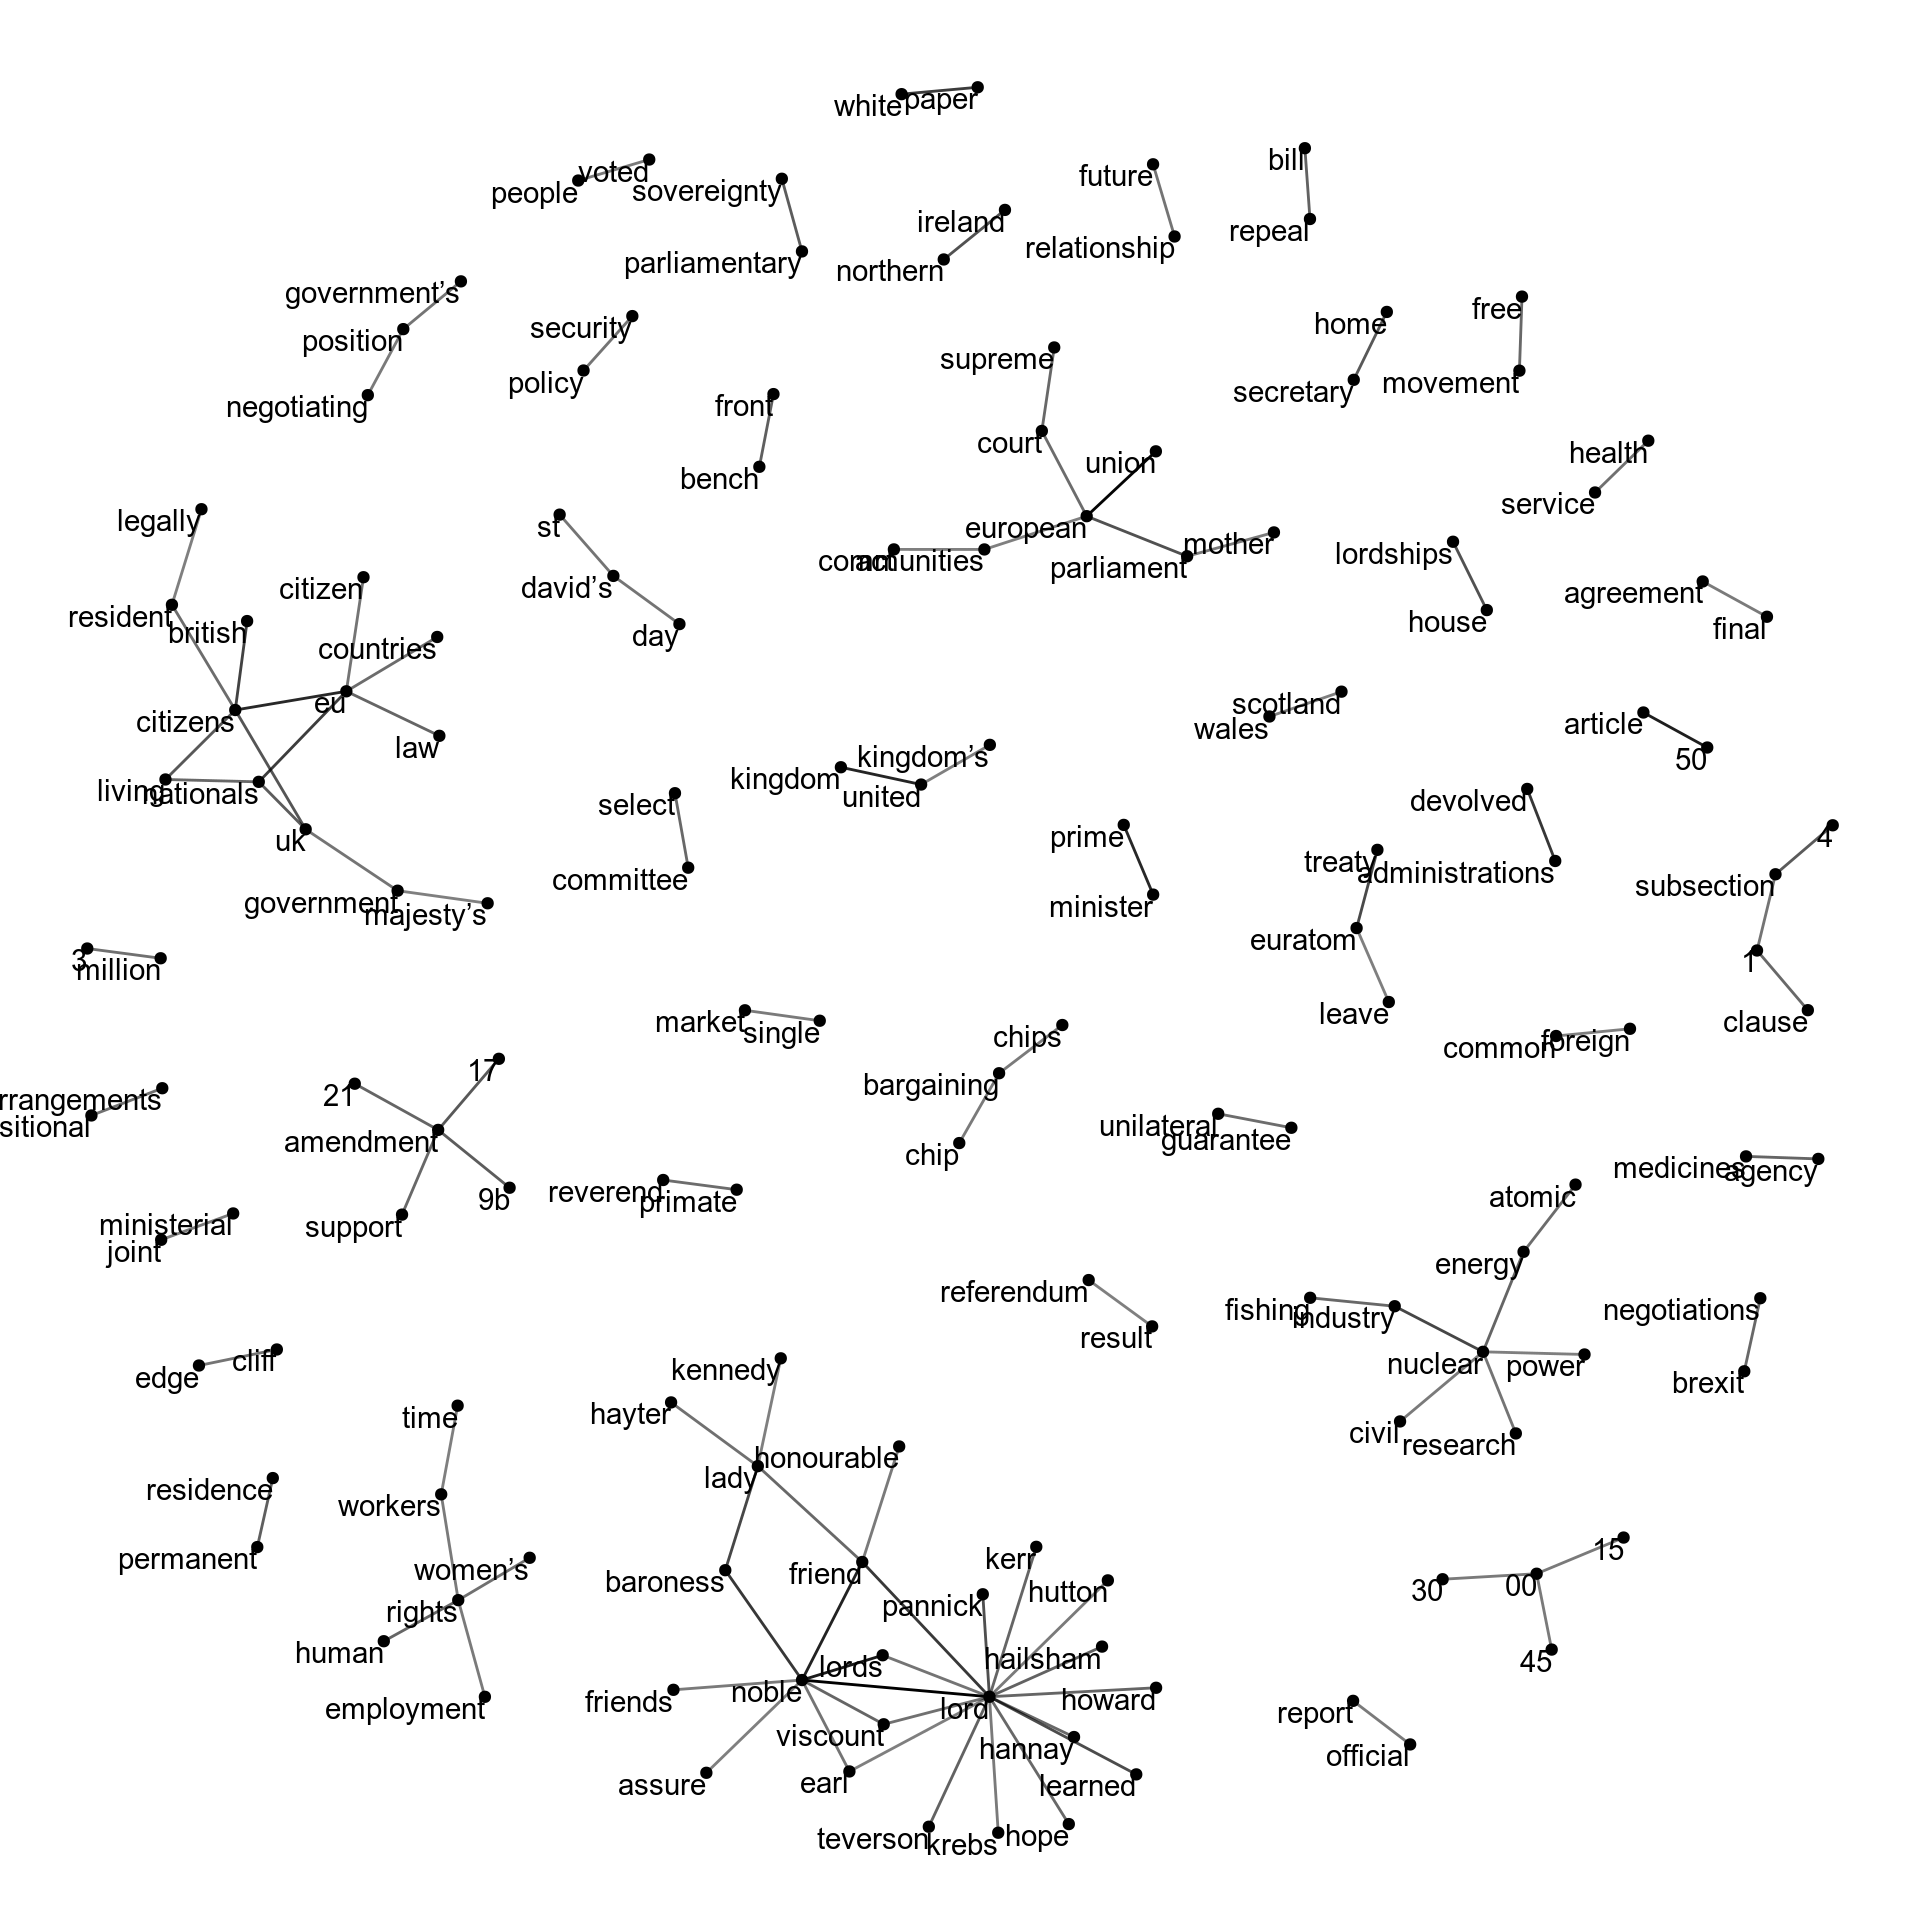 To get this network, I dropped every pair of words that appeared less than five times in the whole Hansard. Remaining words are placed on the graph and lines connected between the ones that occur together in pairs. The strength of the line tells us how often the pair of words were used. An algorithm sorts out the points so that connected nets of words are plotted close to one another and not overlapping with other nets (Thanks [igraph](https://igraph.org/r/) and [ggraph](https://github.com/thomasp85/ggraph)!).